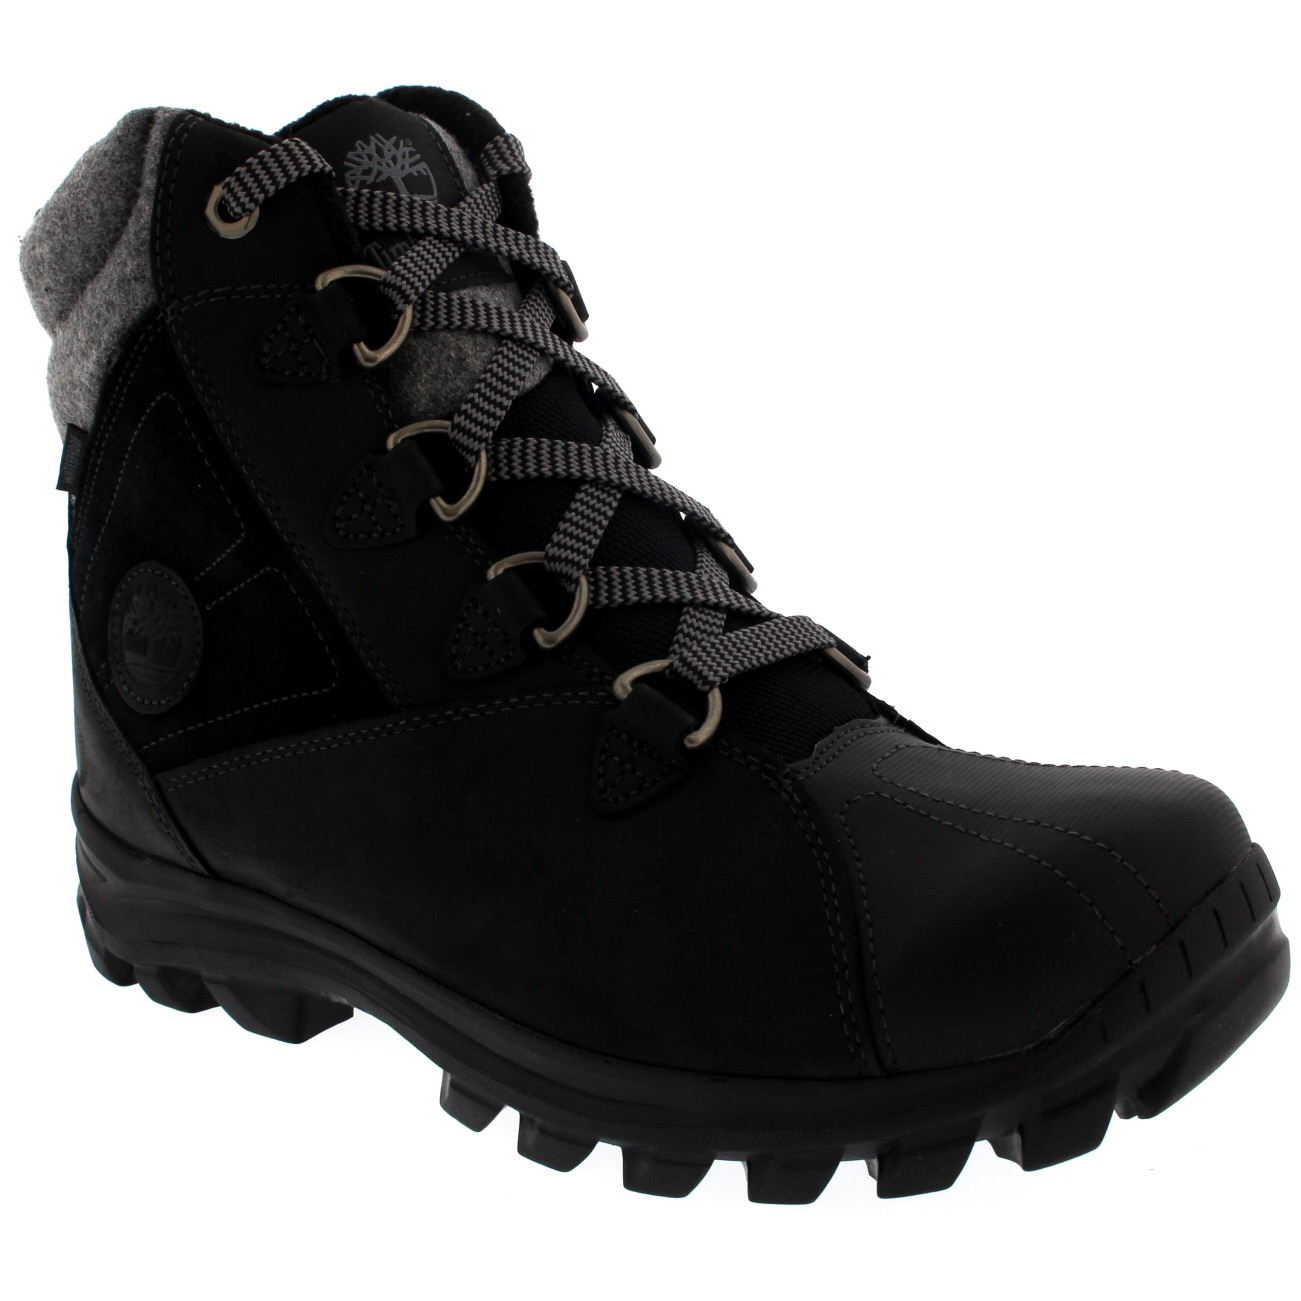 Timberland Chilberg Mid Boots